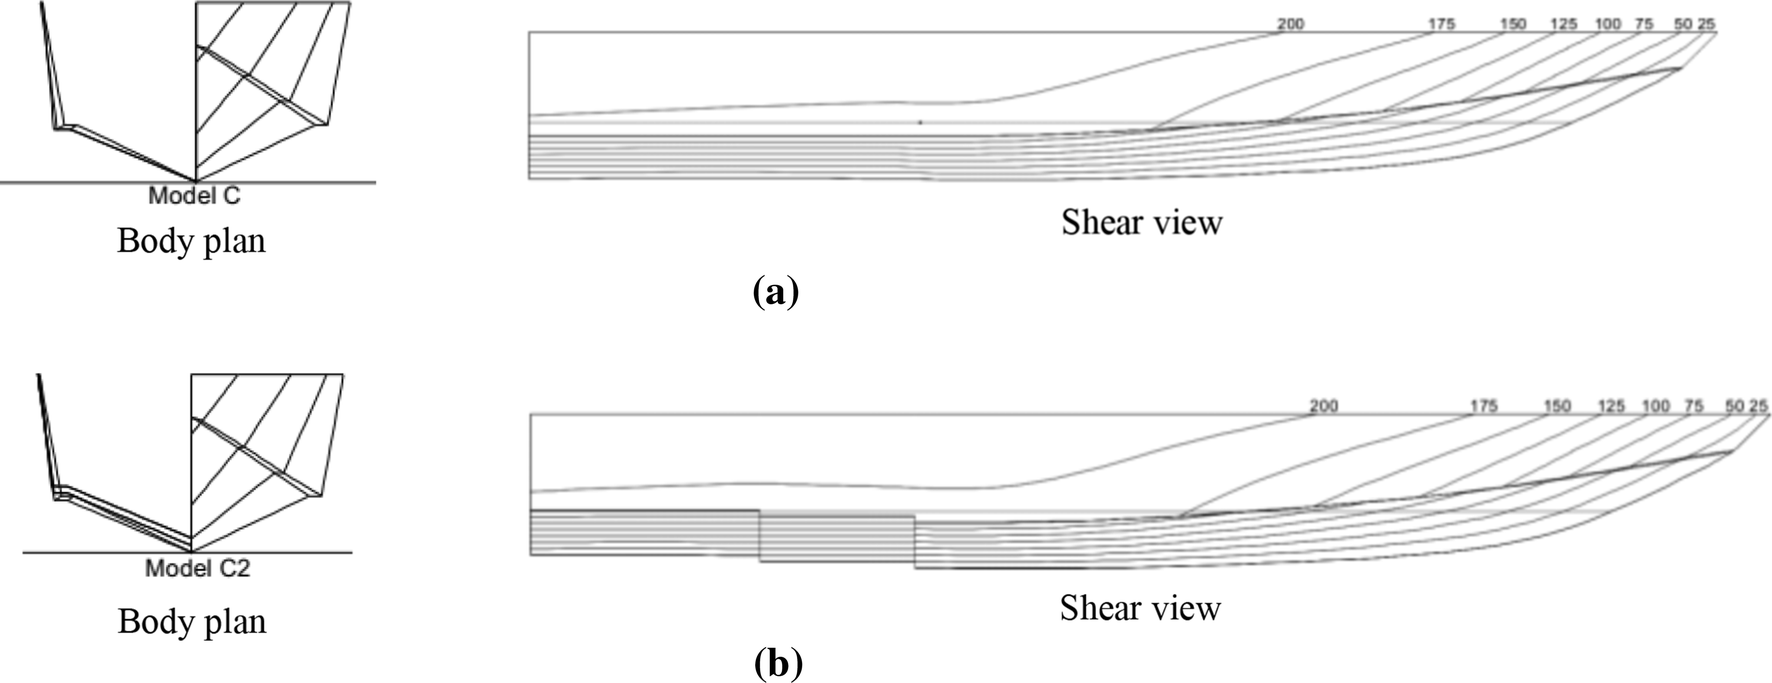 Hydrodynamic study of a double-stepped planing craft through